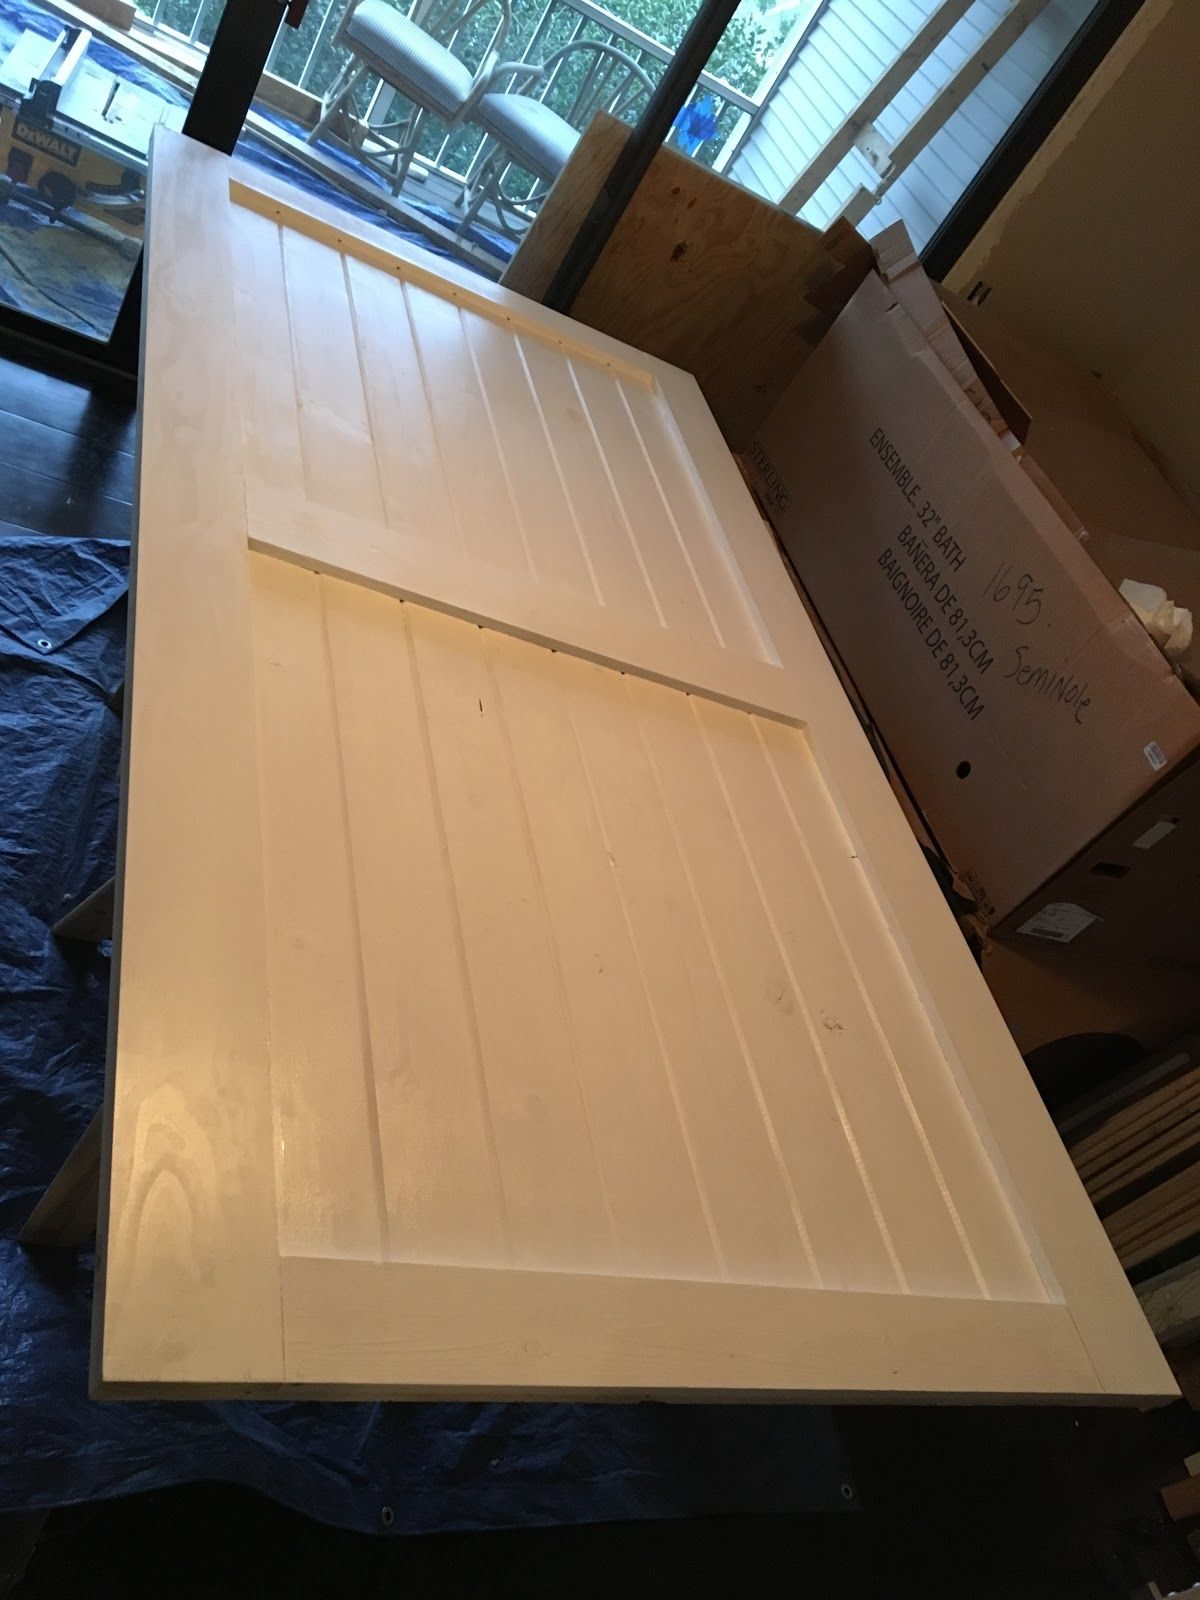 Tongue And Groove Boards Make This Sliding Barn Door Diy As Simple As Can Be Interior Barn Doors Barn Door Interior Barn Doors Diy